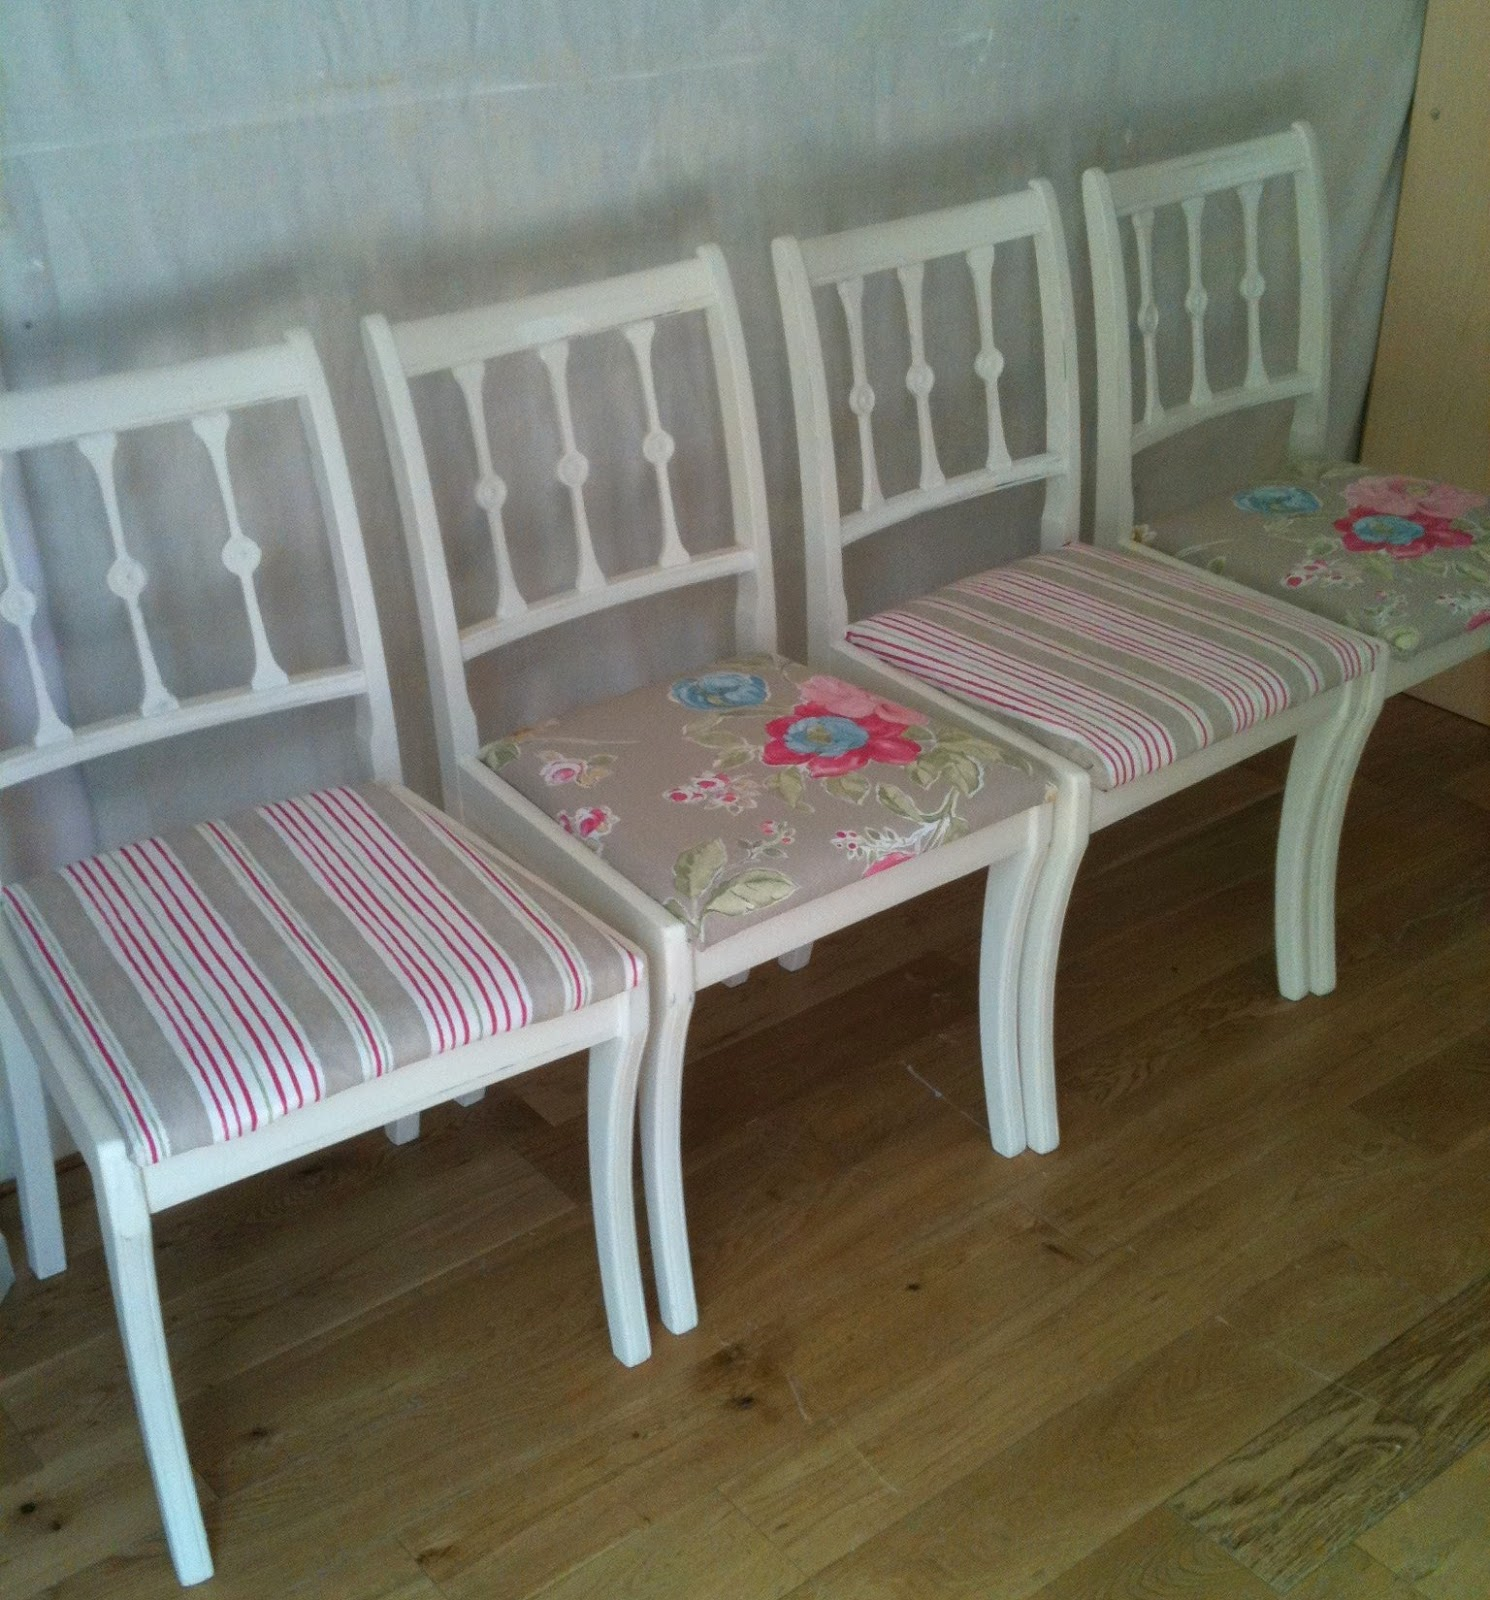 Upcycled Dining Room Chairs Chair Covers And Linens Bowiebelle Vintage Furniture